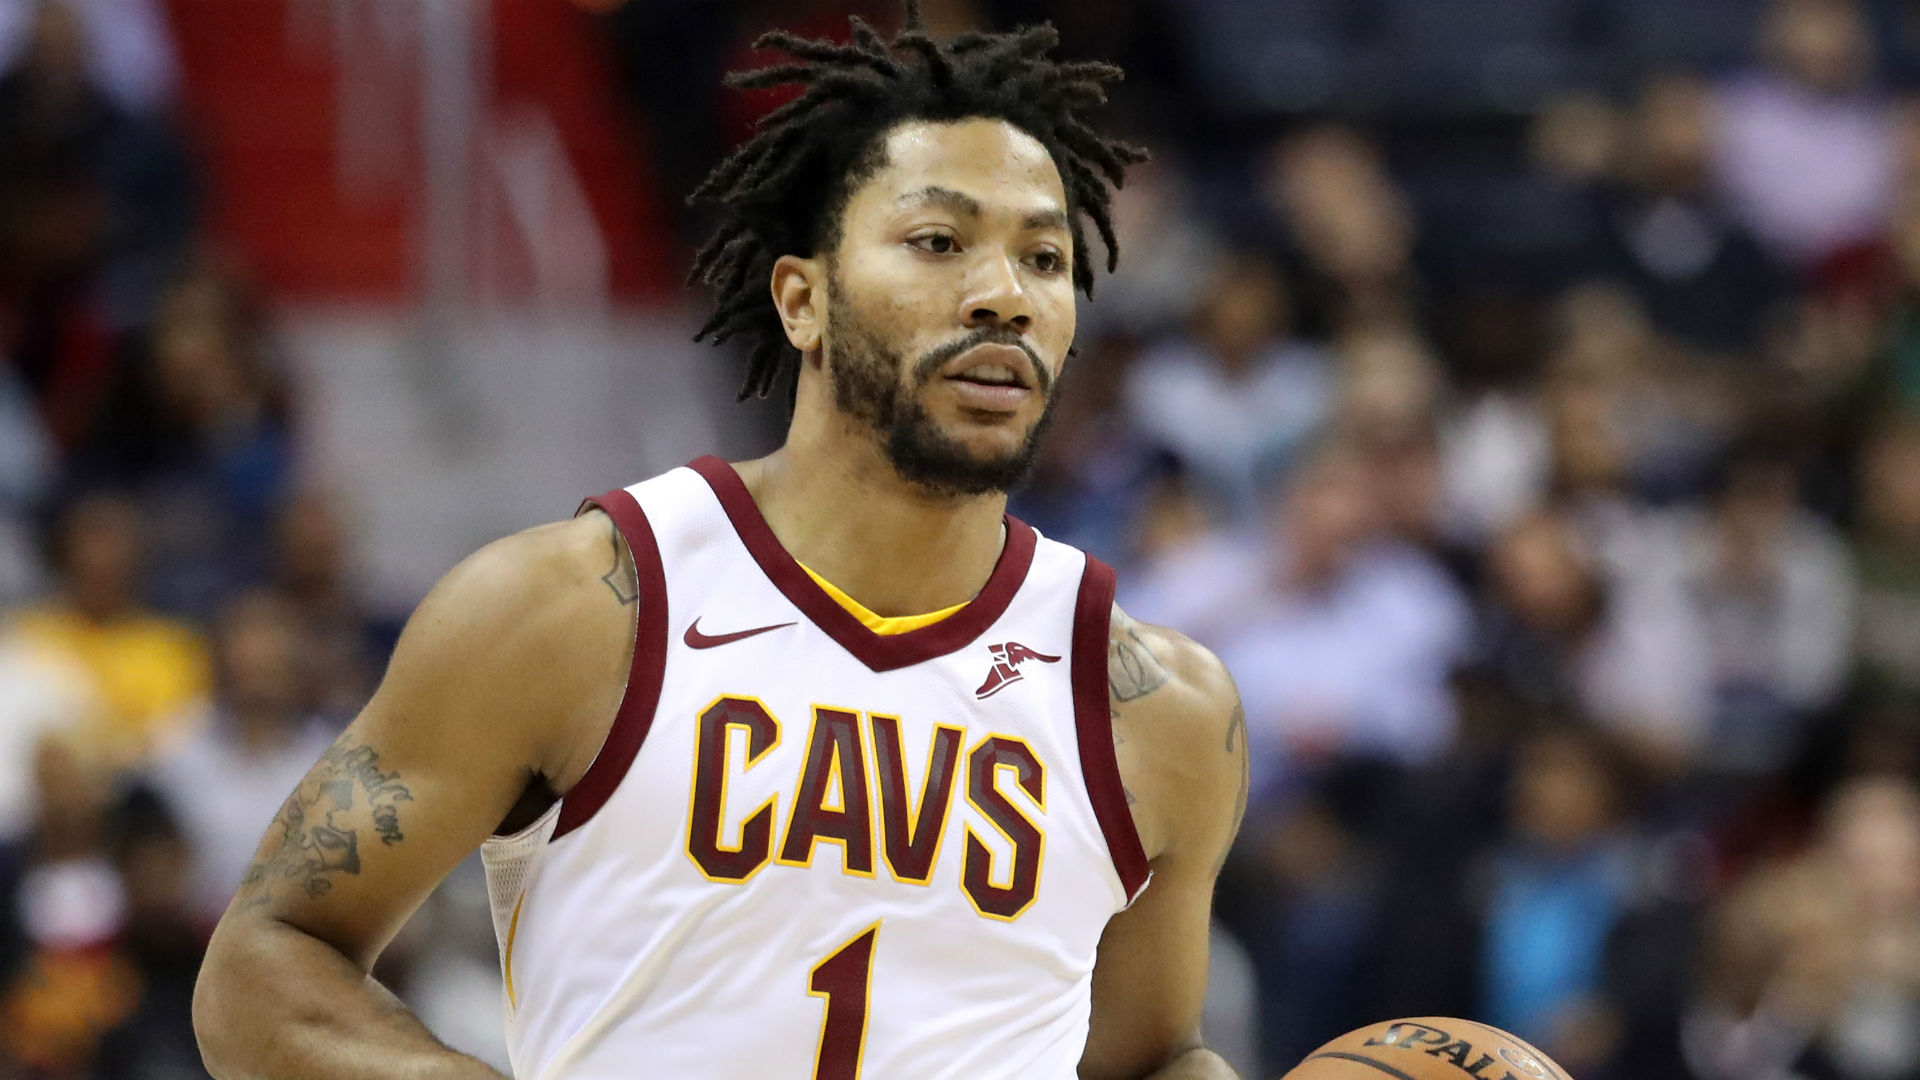 Derrick Rose apologizes to Cavs teammates for two-week exile, report says